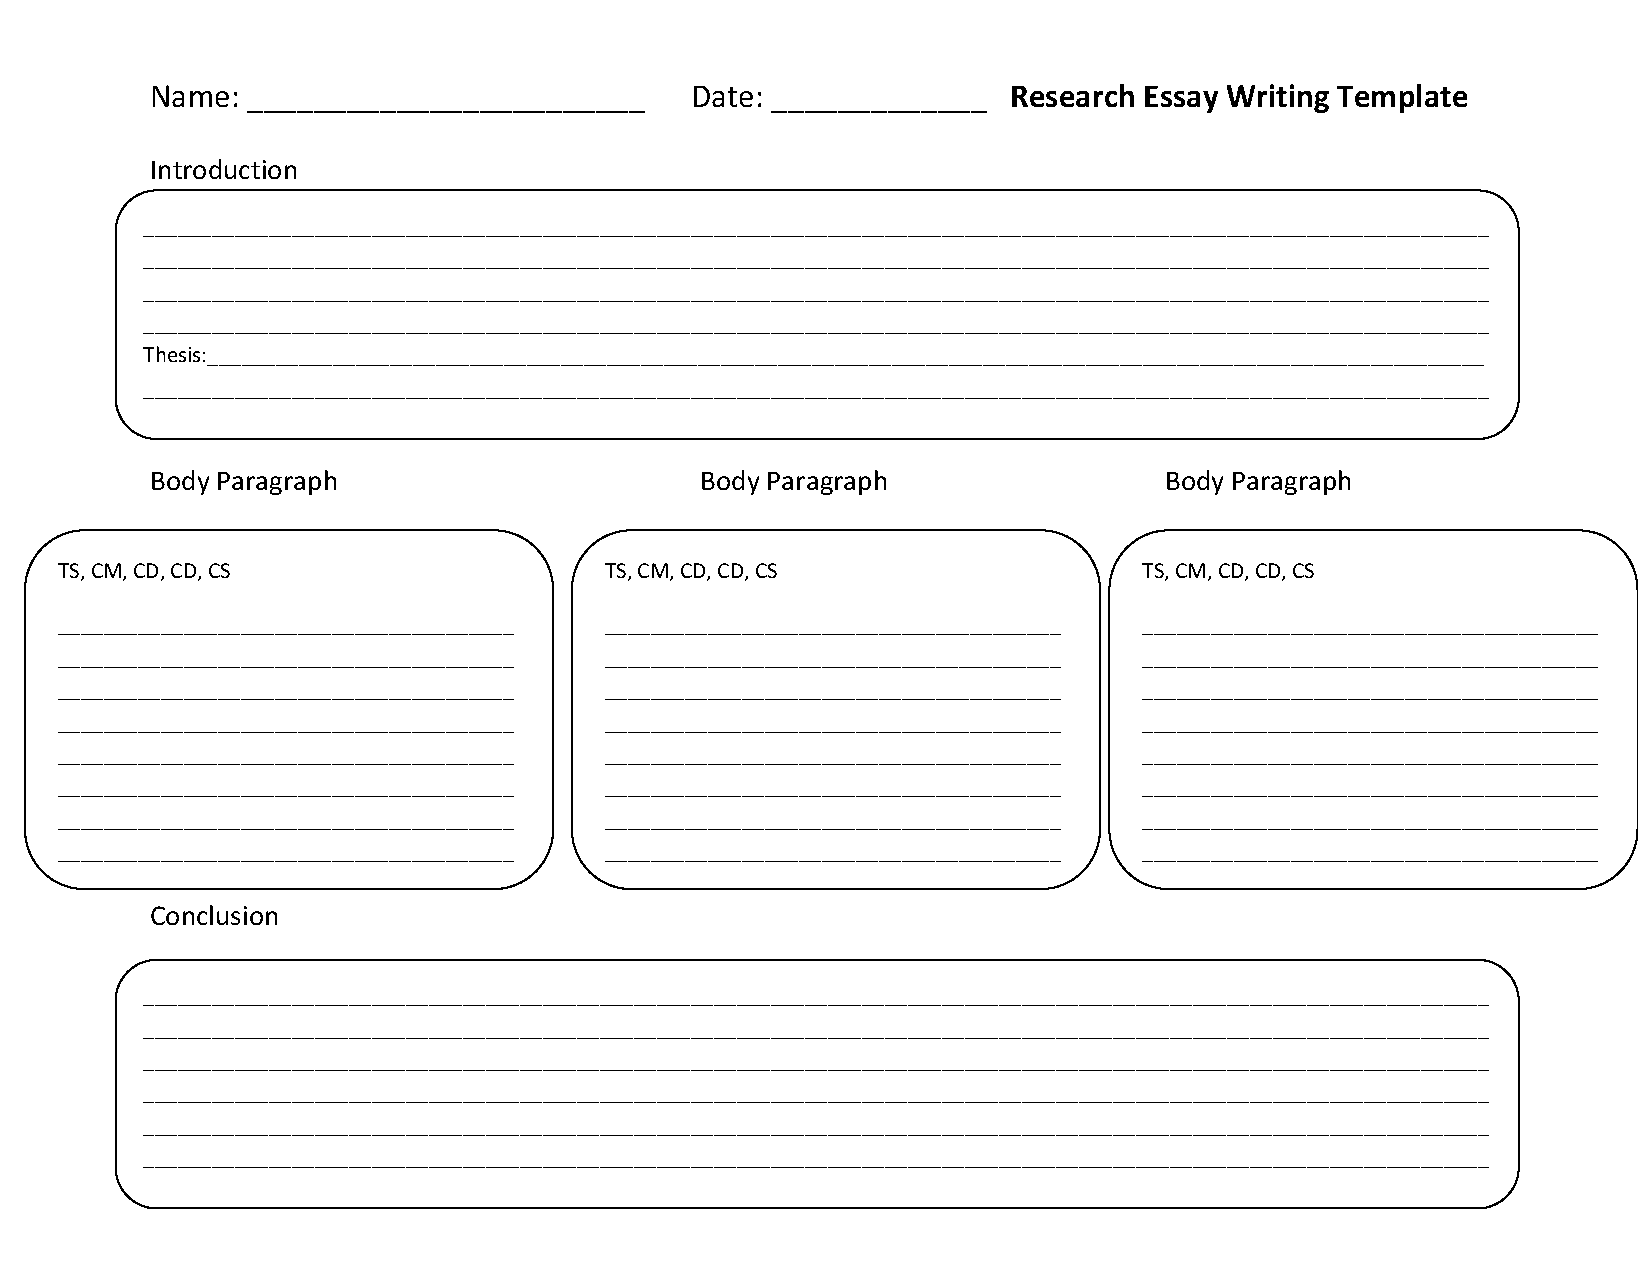 essay writing worksheets adults Activities, worksheet and lessons that teach esl students to learn english writing, speaking, listening, conversation and vocabulary.